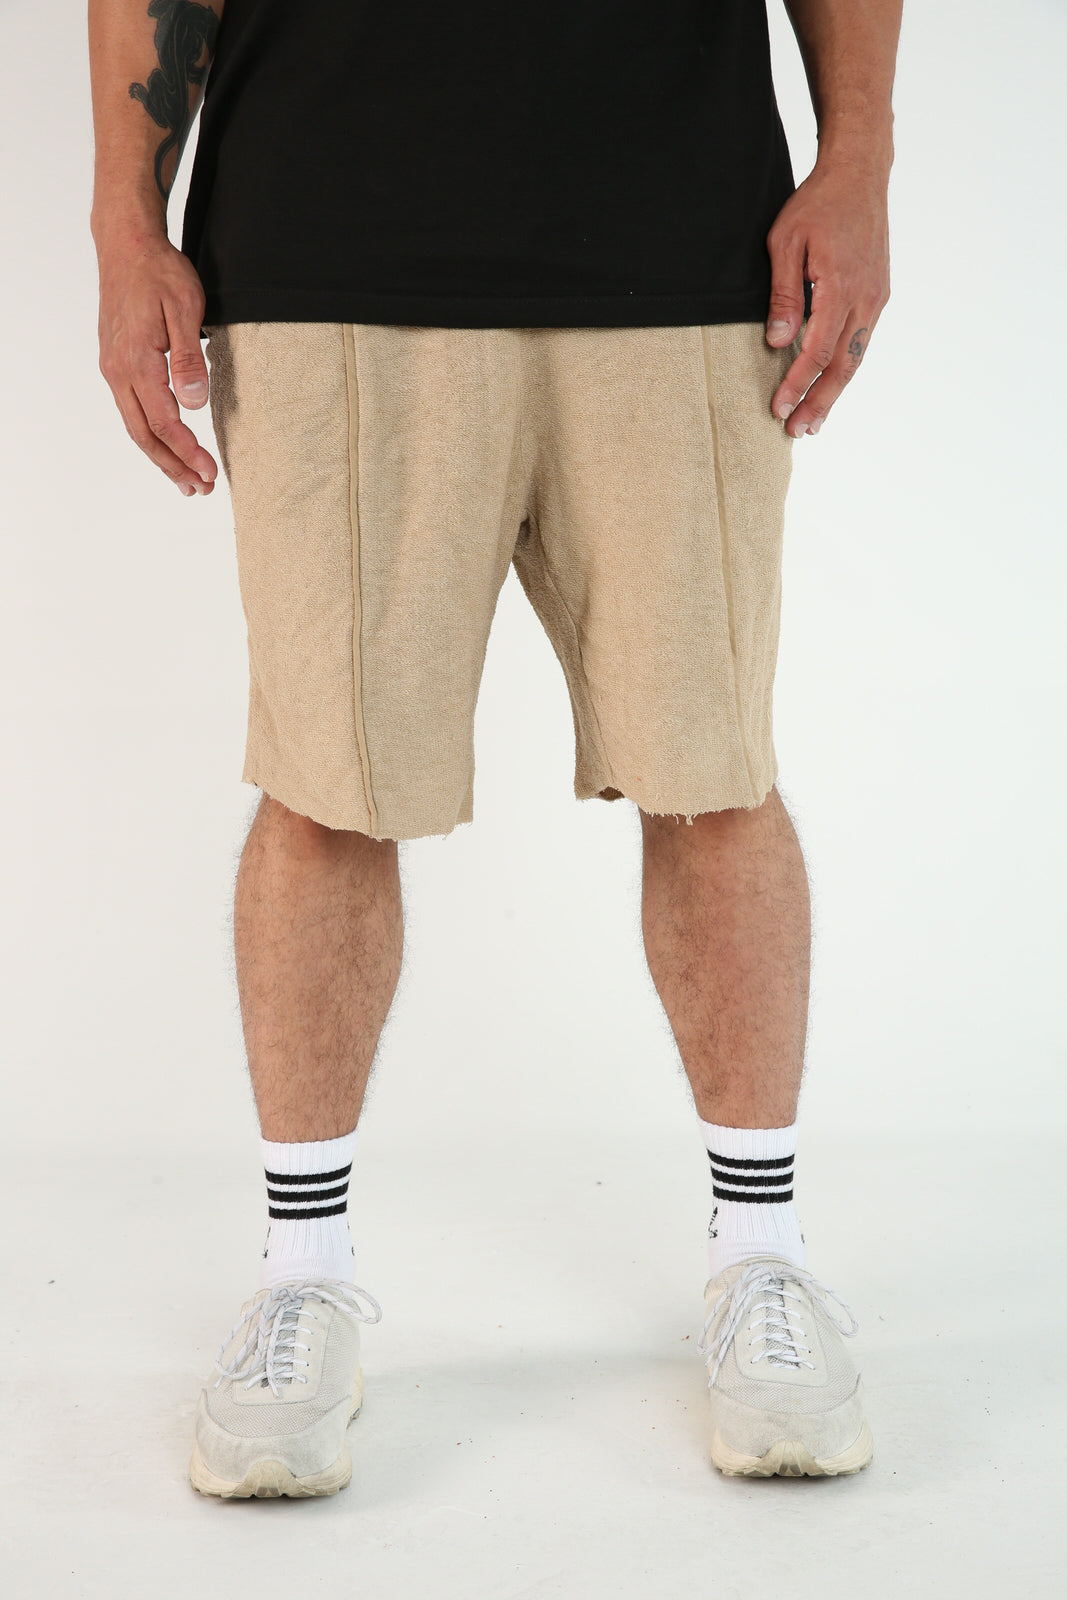 The Highlight Shorts in Tan